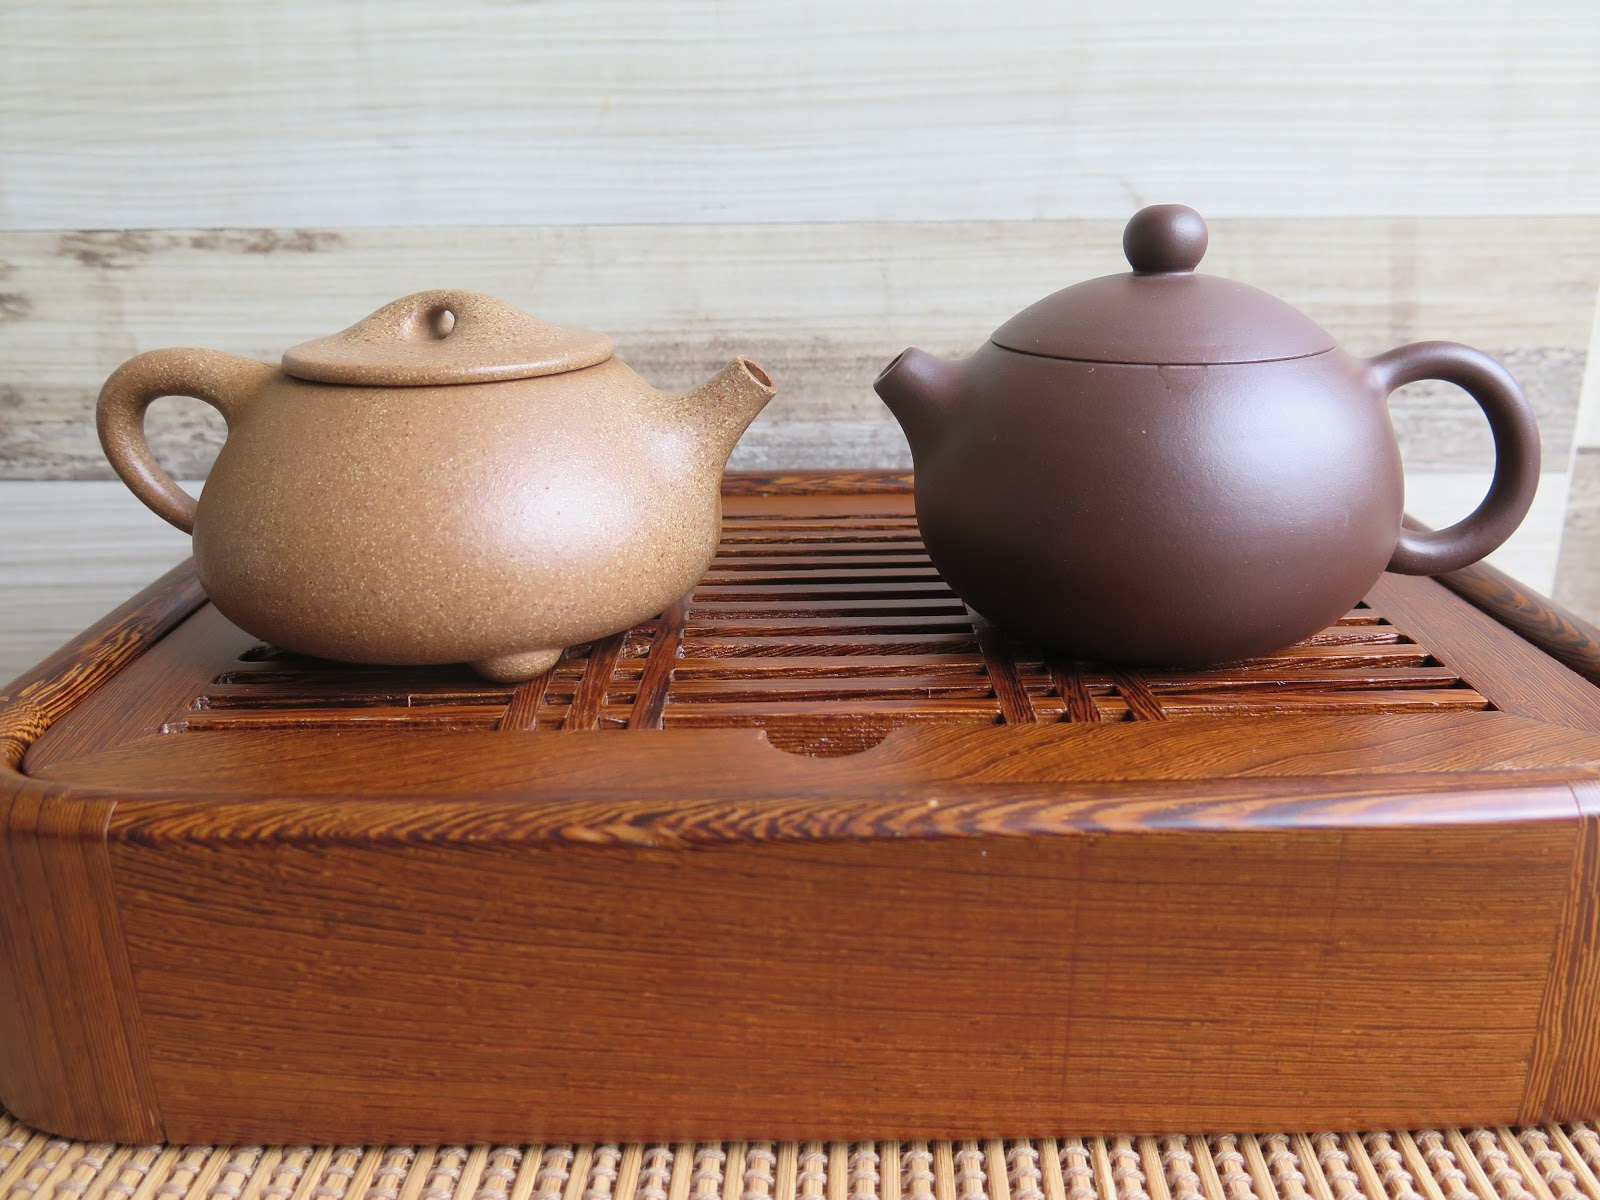 Which teapot is better